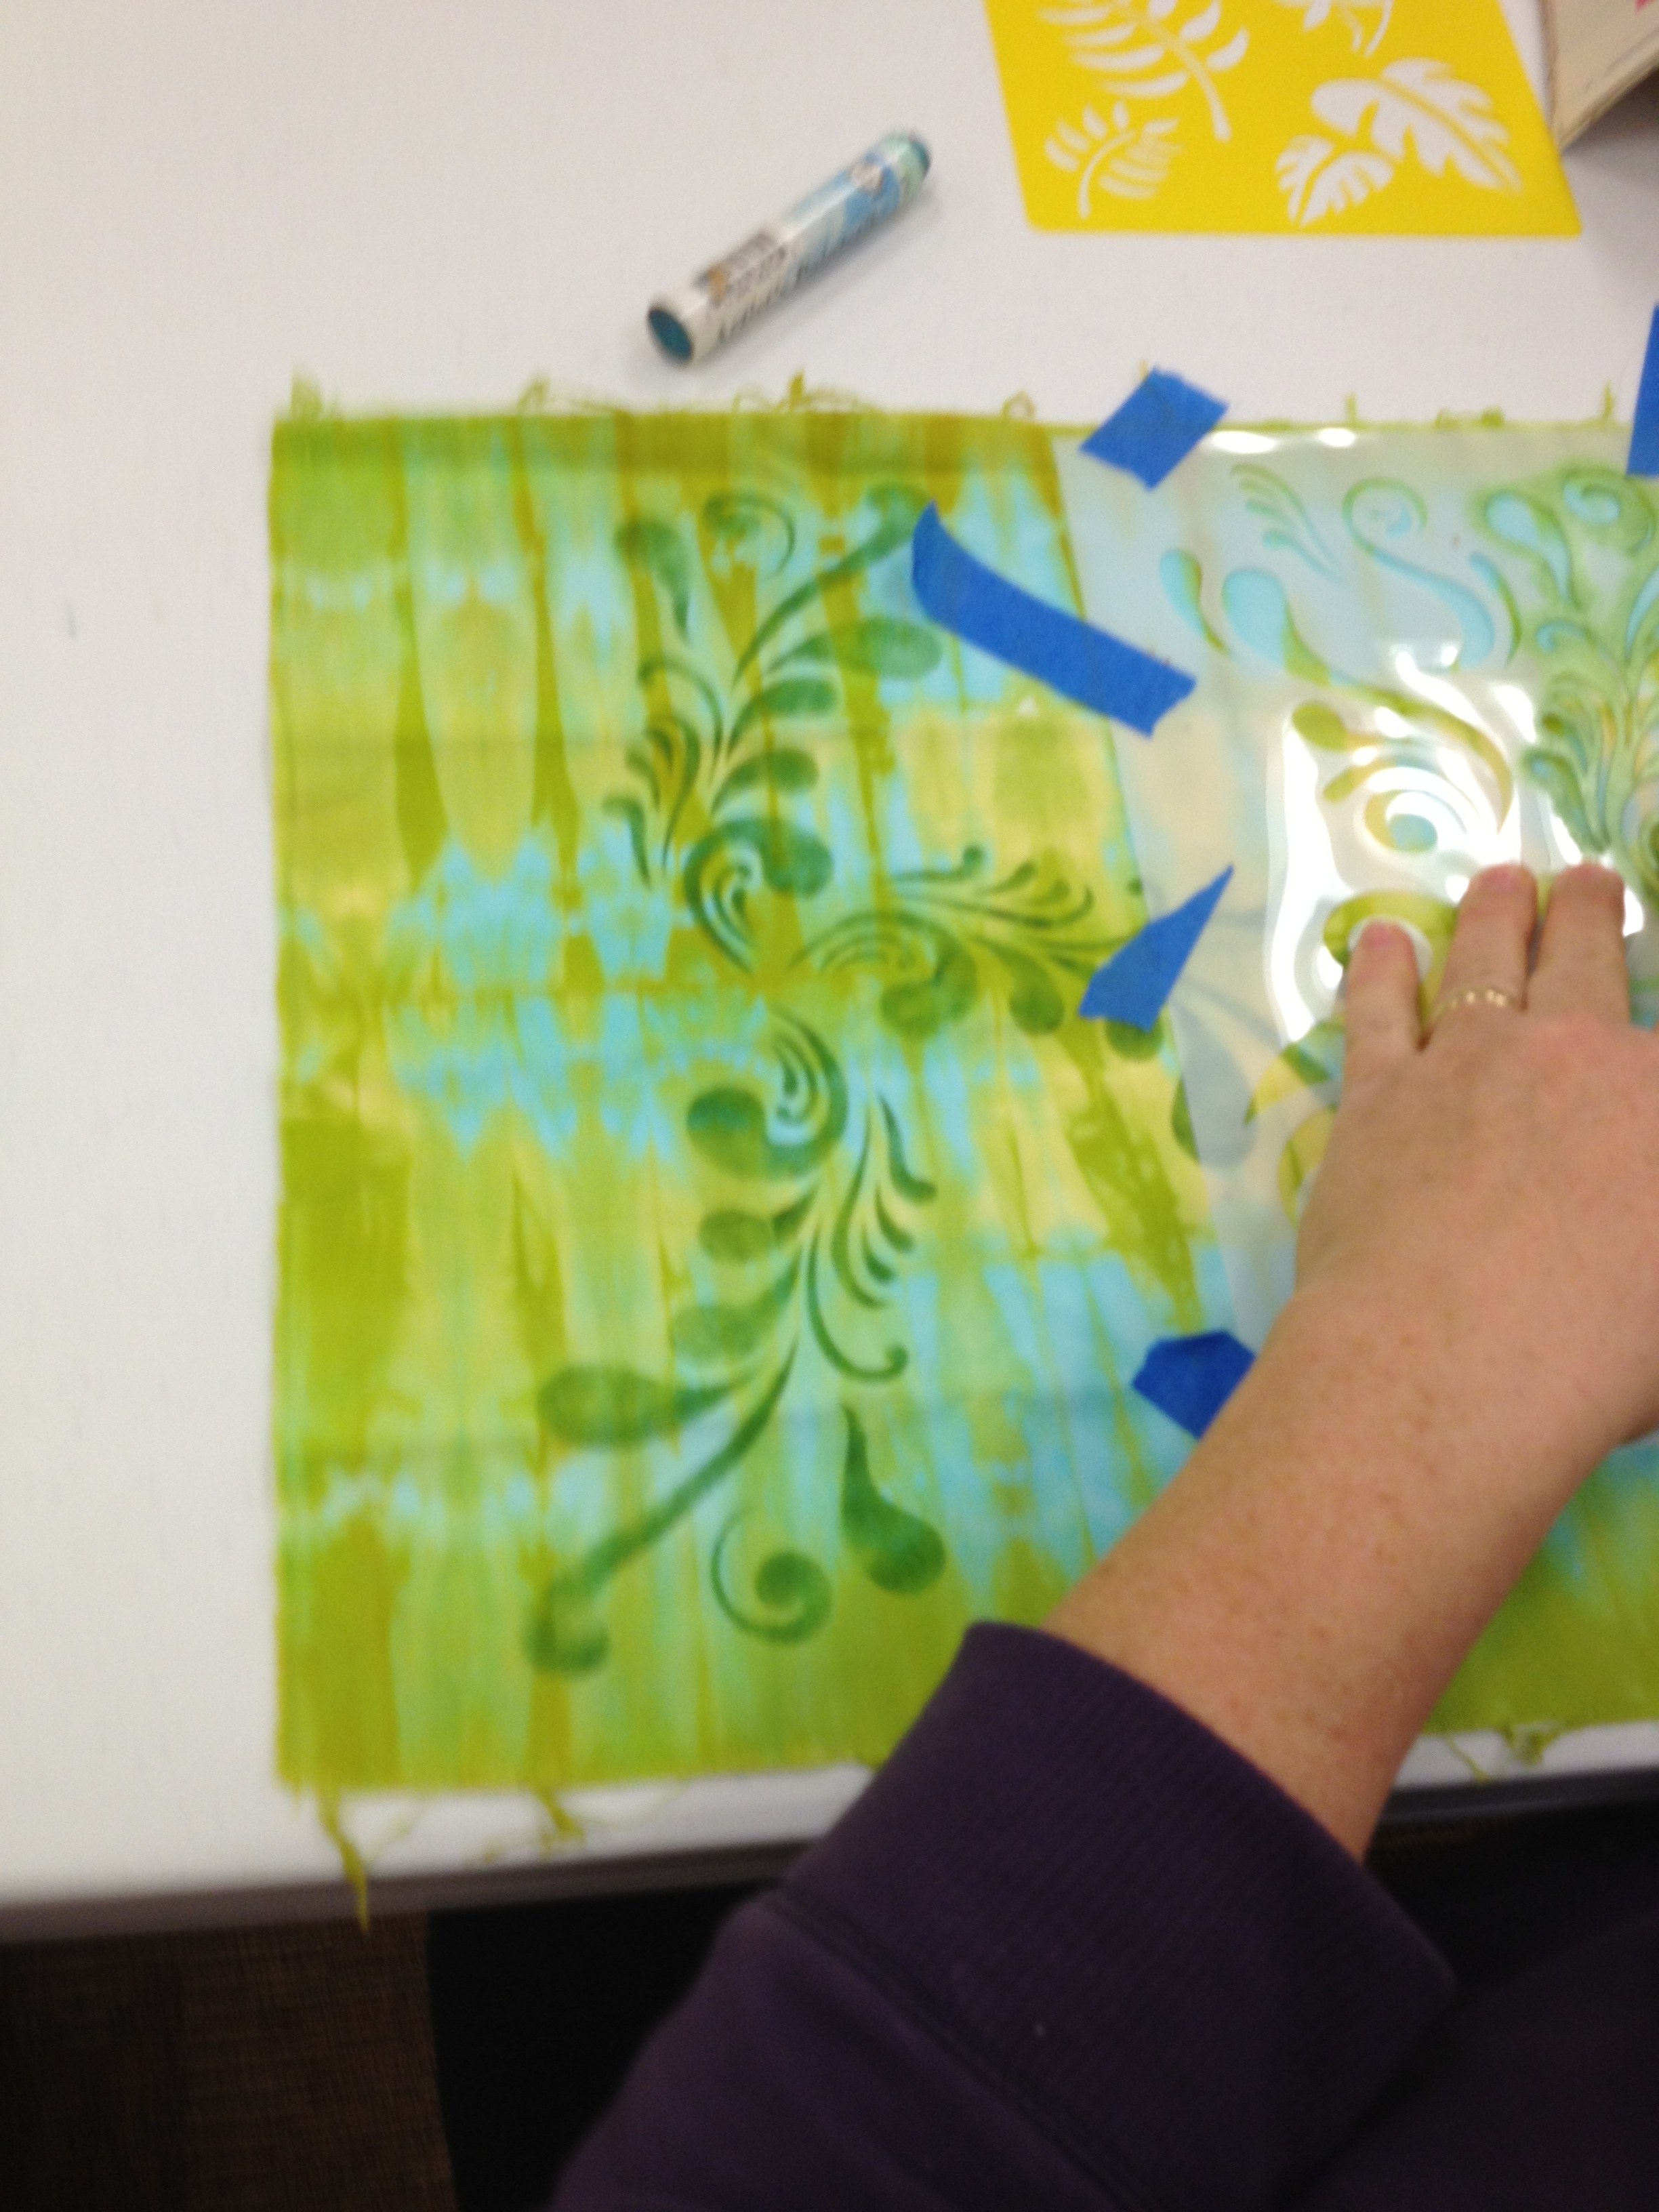 Working with stencils--analogous colors